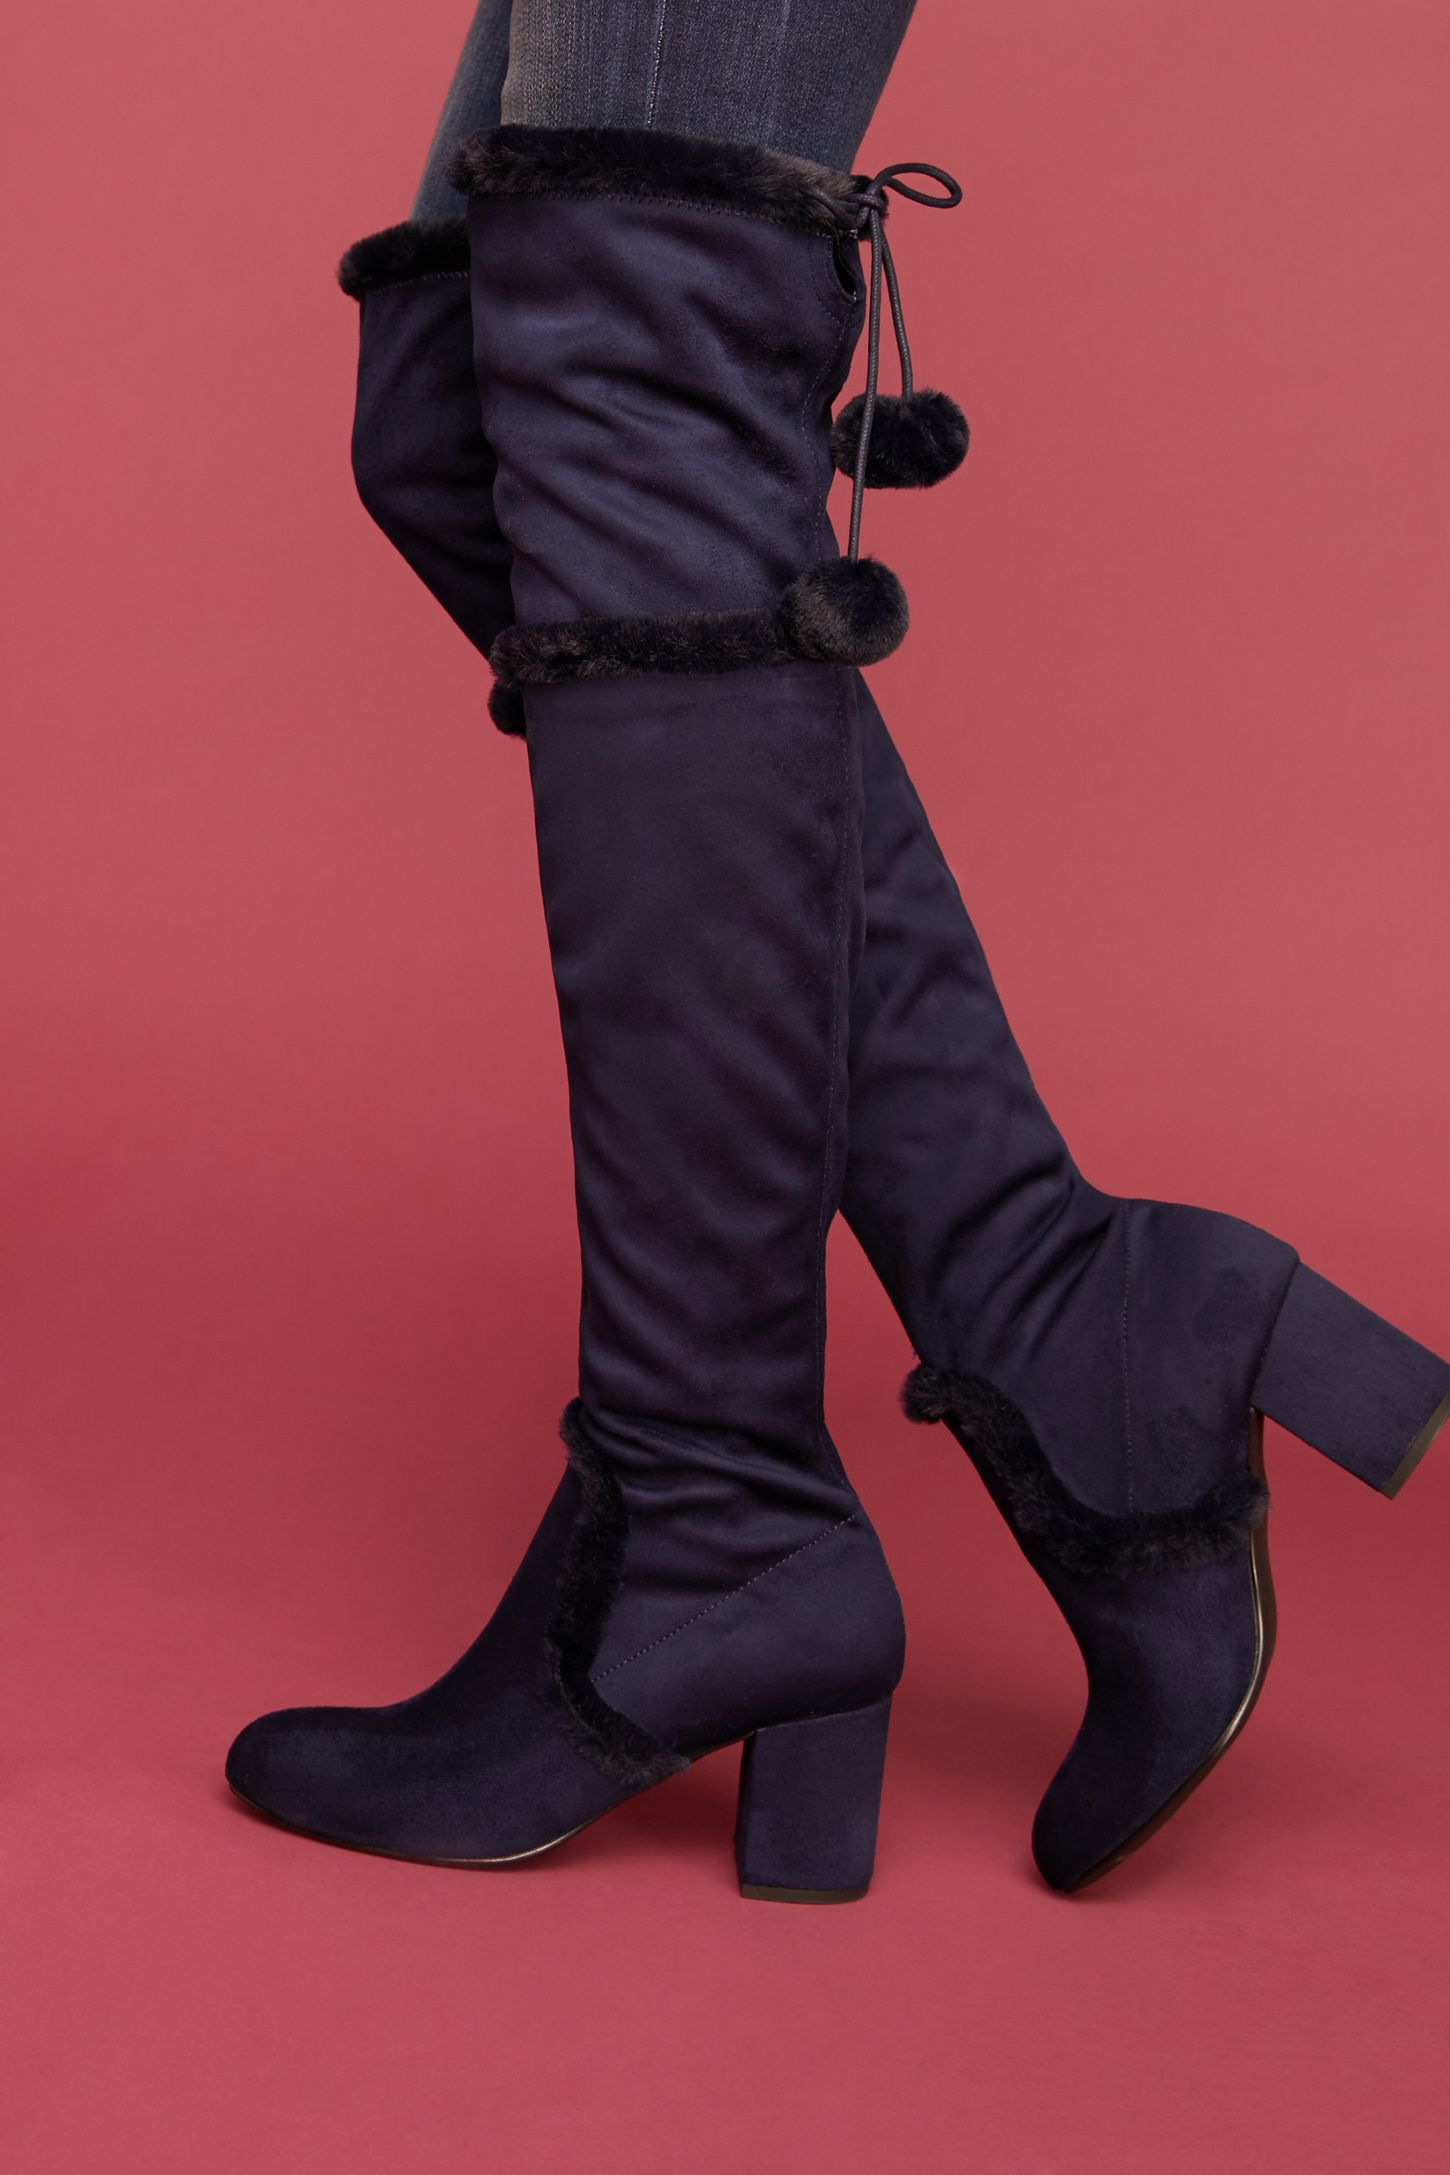 f0442c996f539 Charles David Odom Over-The-Knee Boots. Tap image to zoom. Hover your mouse  over an image to zoom. Double Tap to Zoom